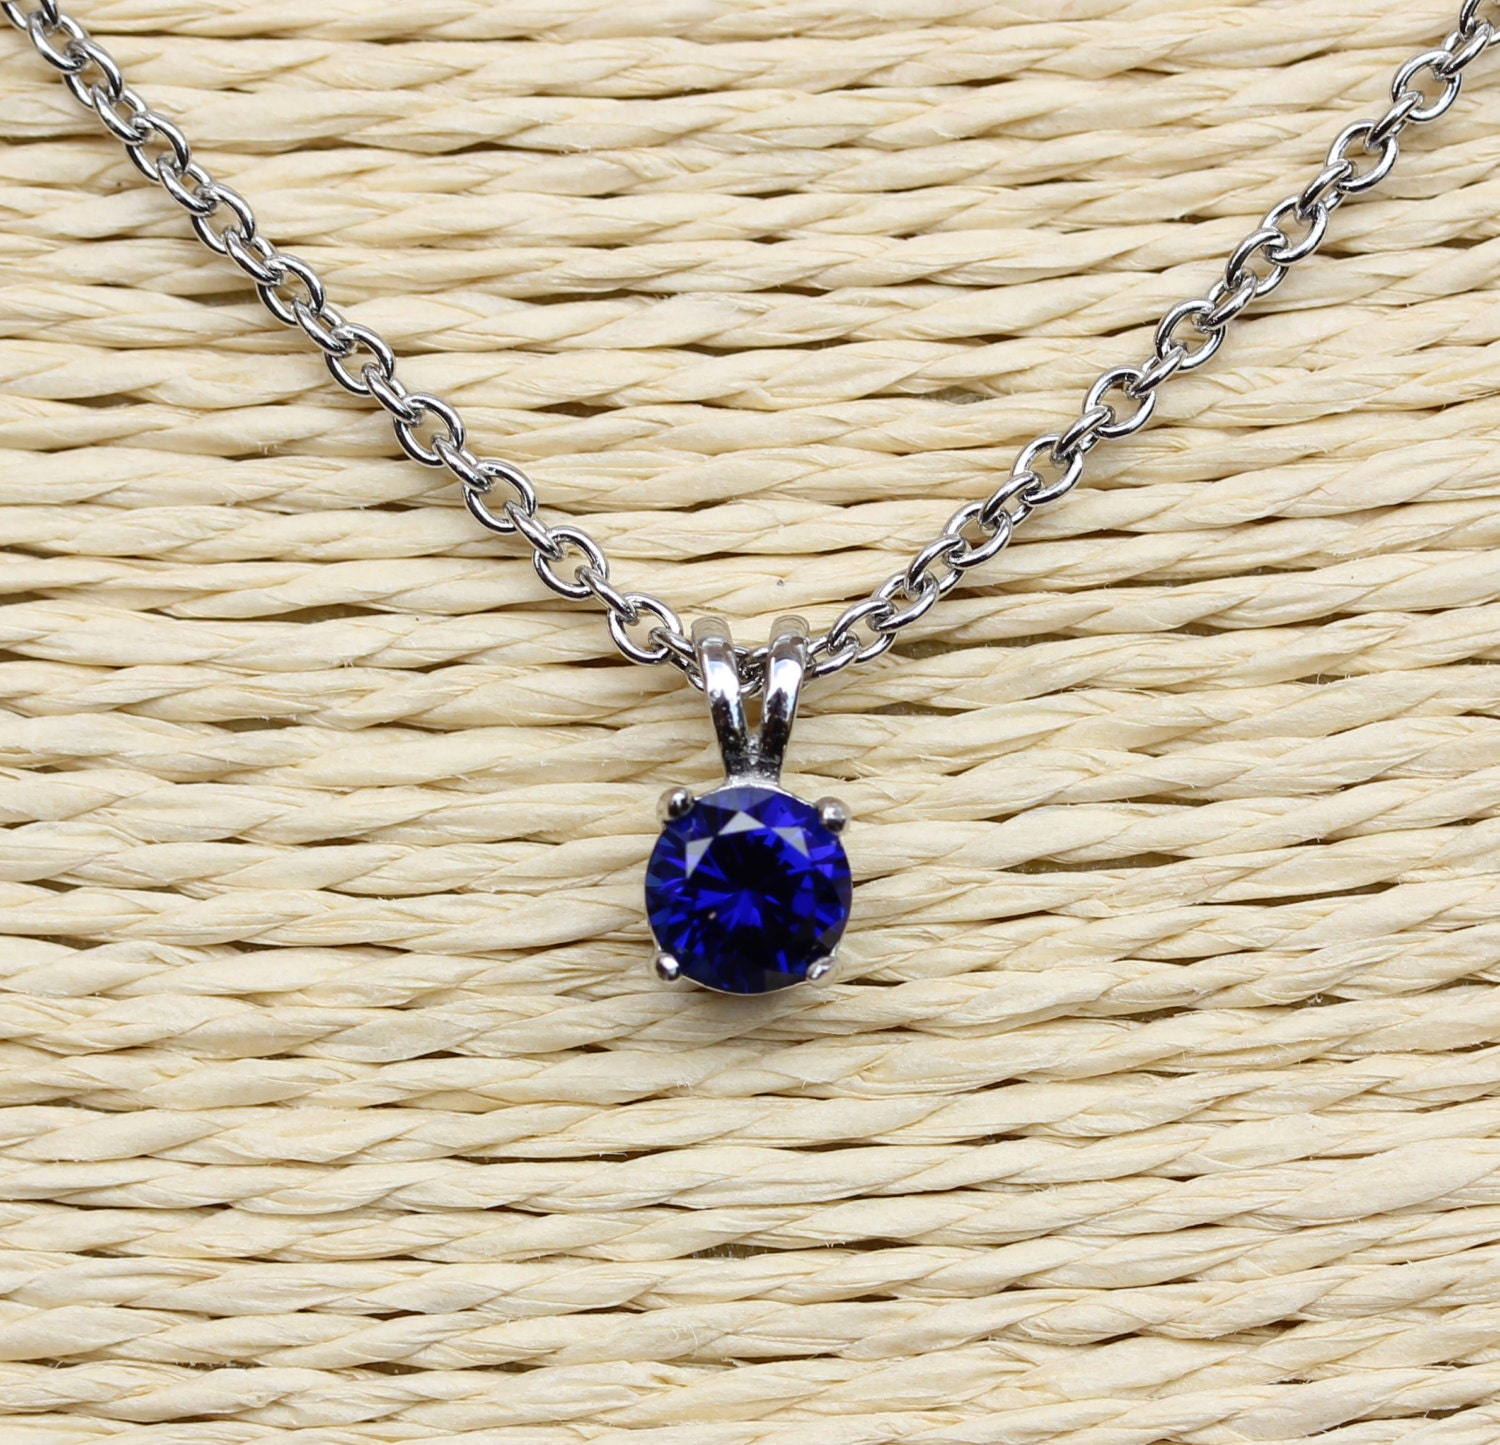 Natural Blue Sapphire Pendant Necklace  4mm 5mm 6mm and 7mm sizes  Available in white gold or titanium